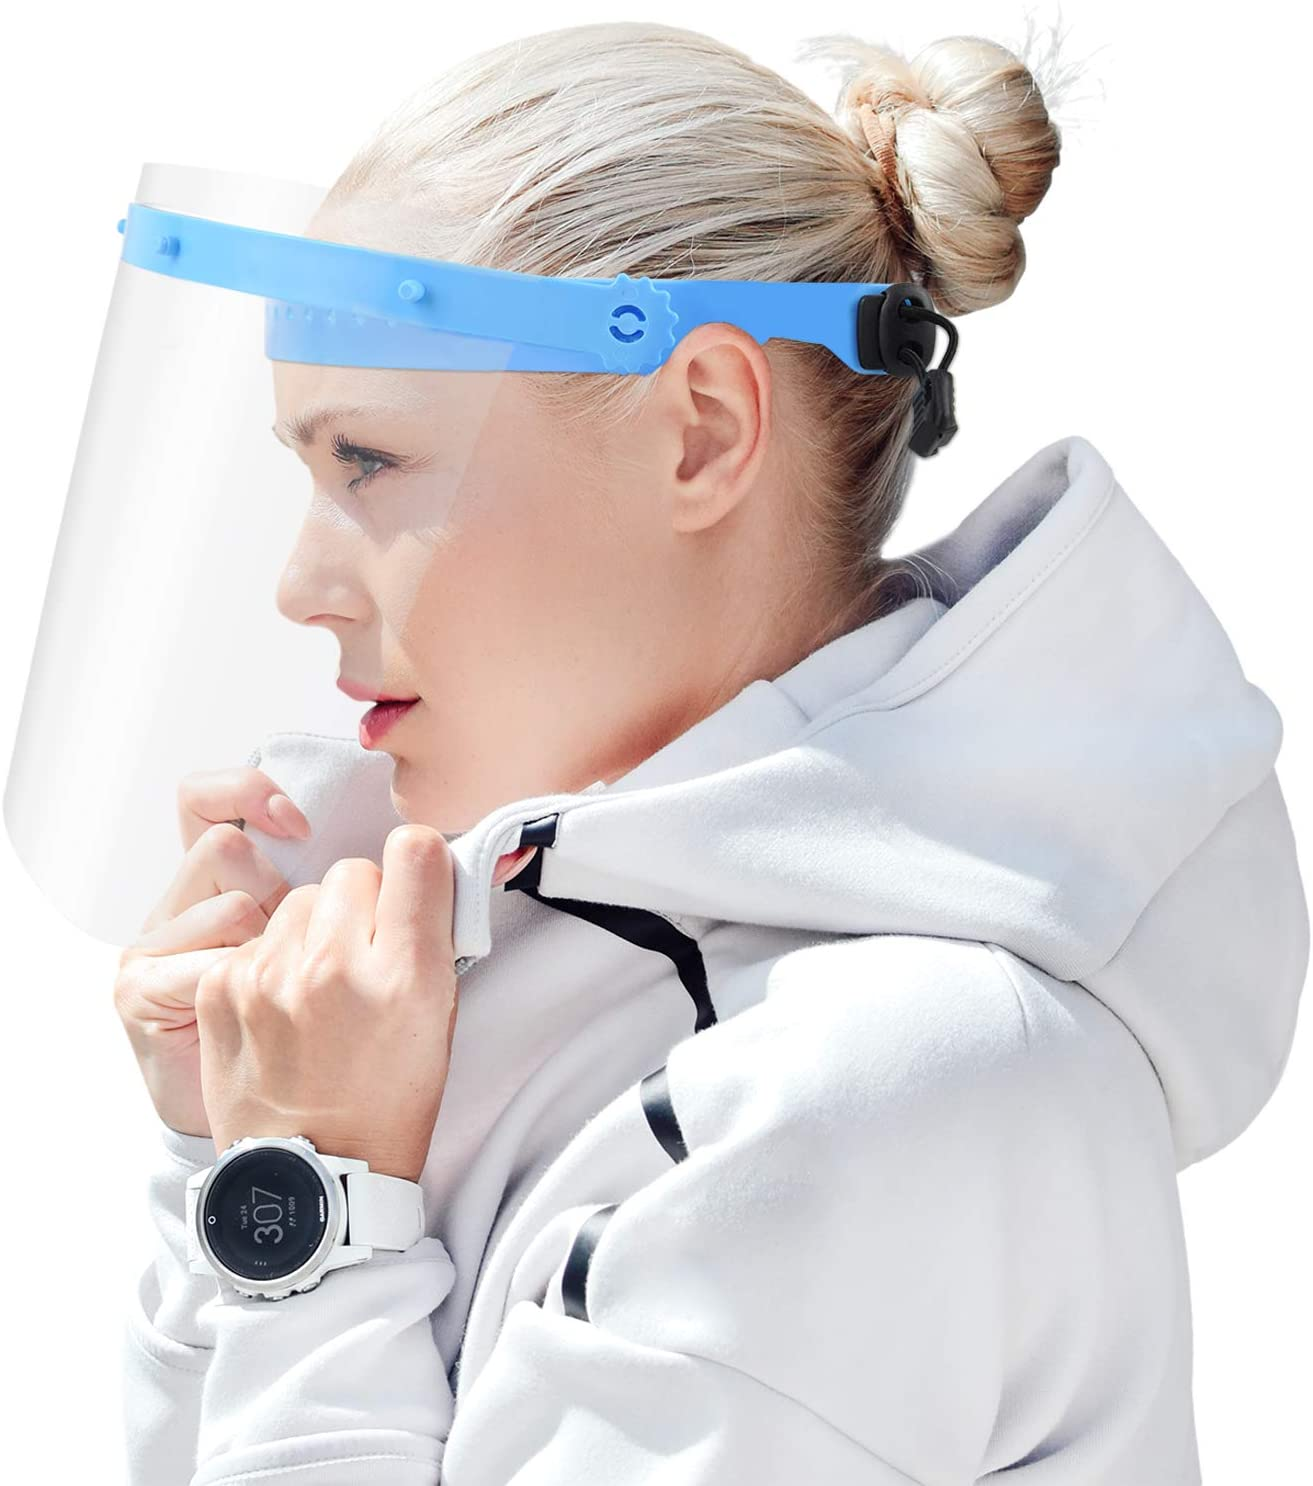 JHGG Reutilizable M/às/κ Clear Face/_Shield Plastic Mouth Nose Shield Clear Guard /ρRotection Adecuado para Mujeres Hombres 2 Piezas